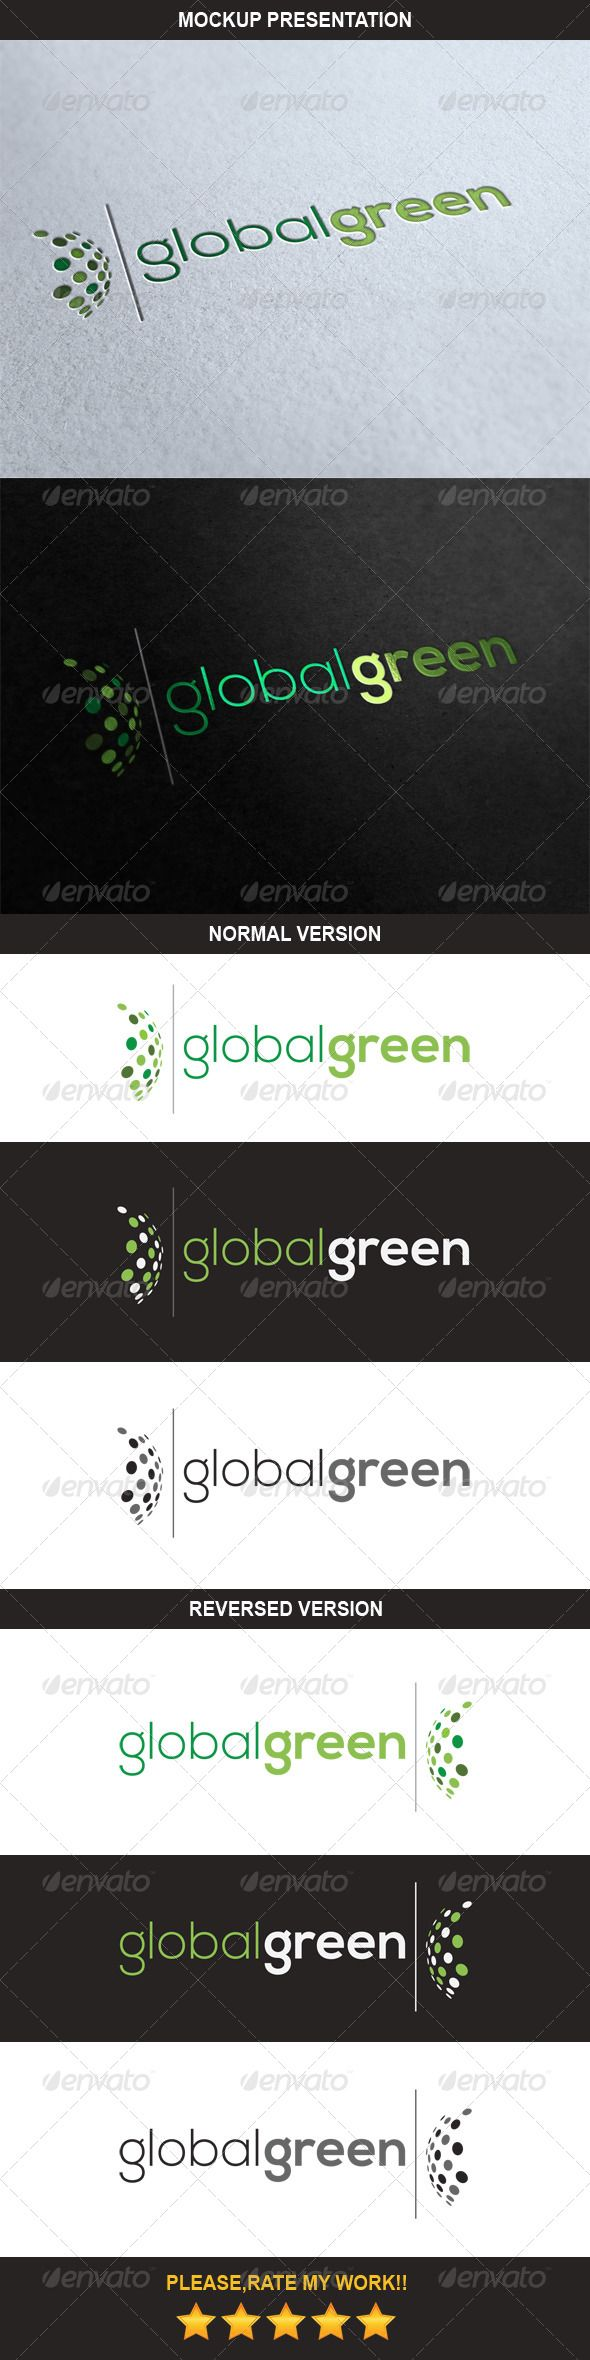 Global Green Logo  EPS Template • Download ➝ https://graphicriver.net/item/global-green-logo/6987340?ref=pxcr